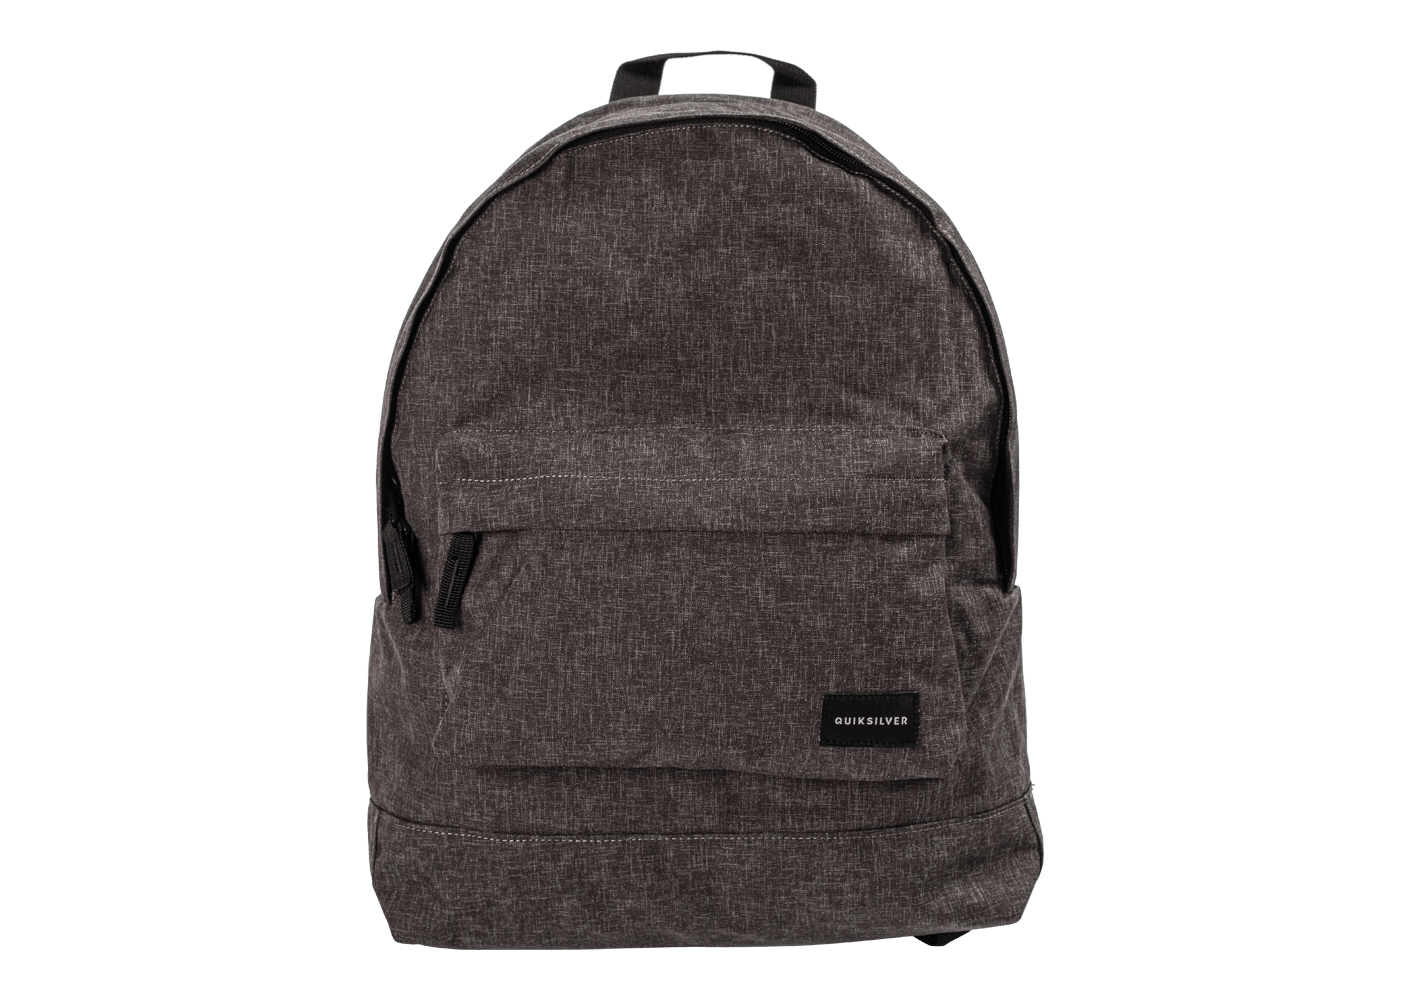 Sac A Dos Bandouliere Quiksilver : Soldes quiksilver sac ? dos everyday edition gris